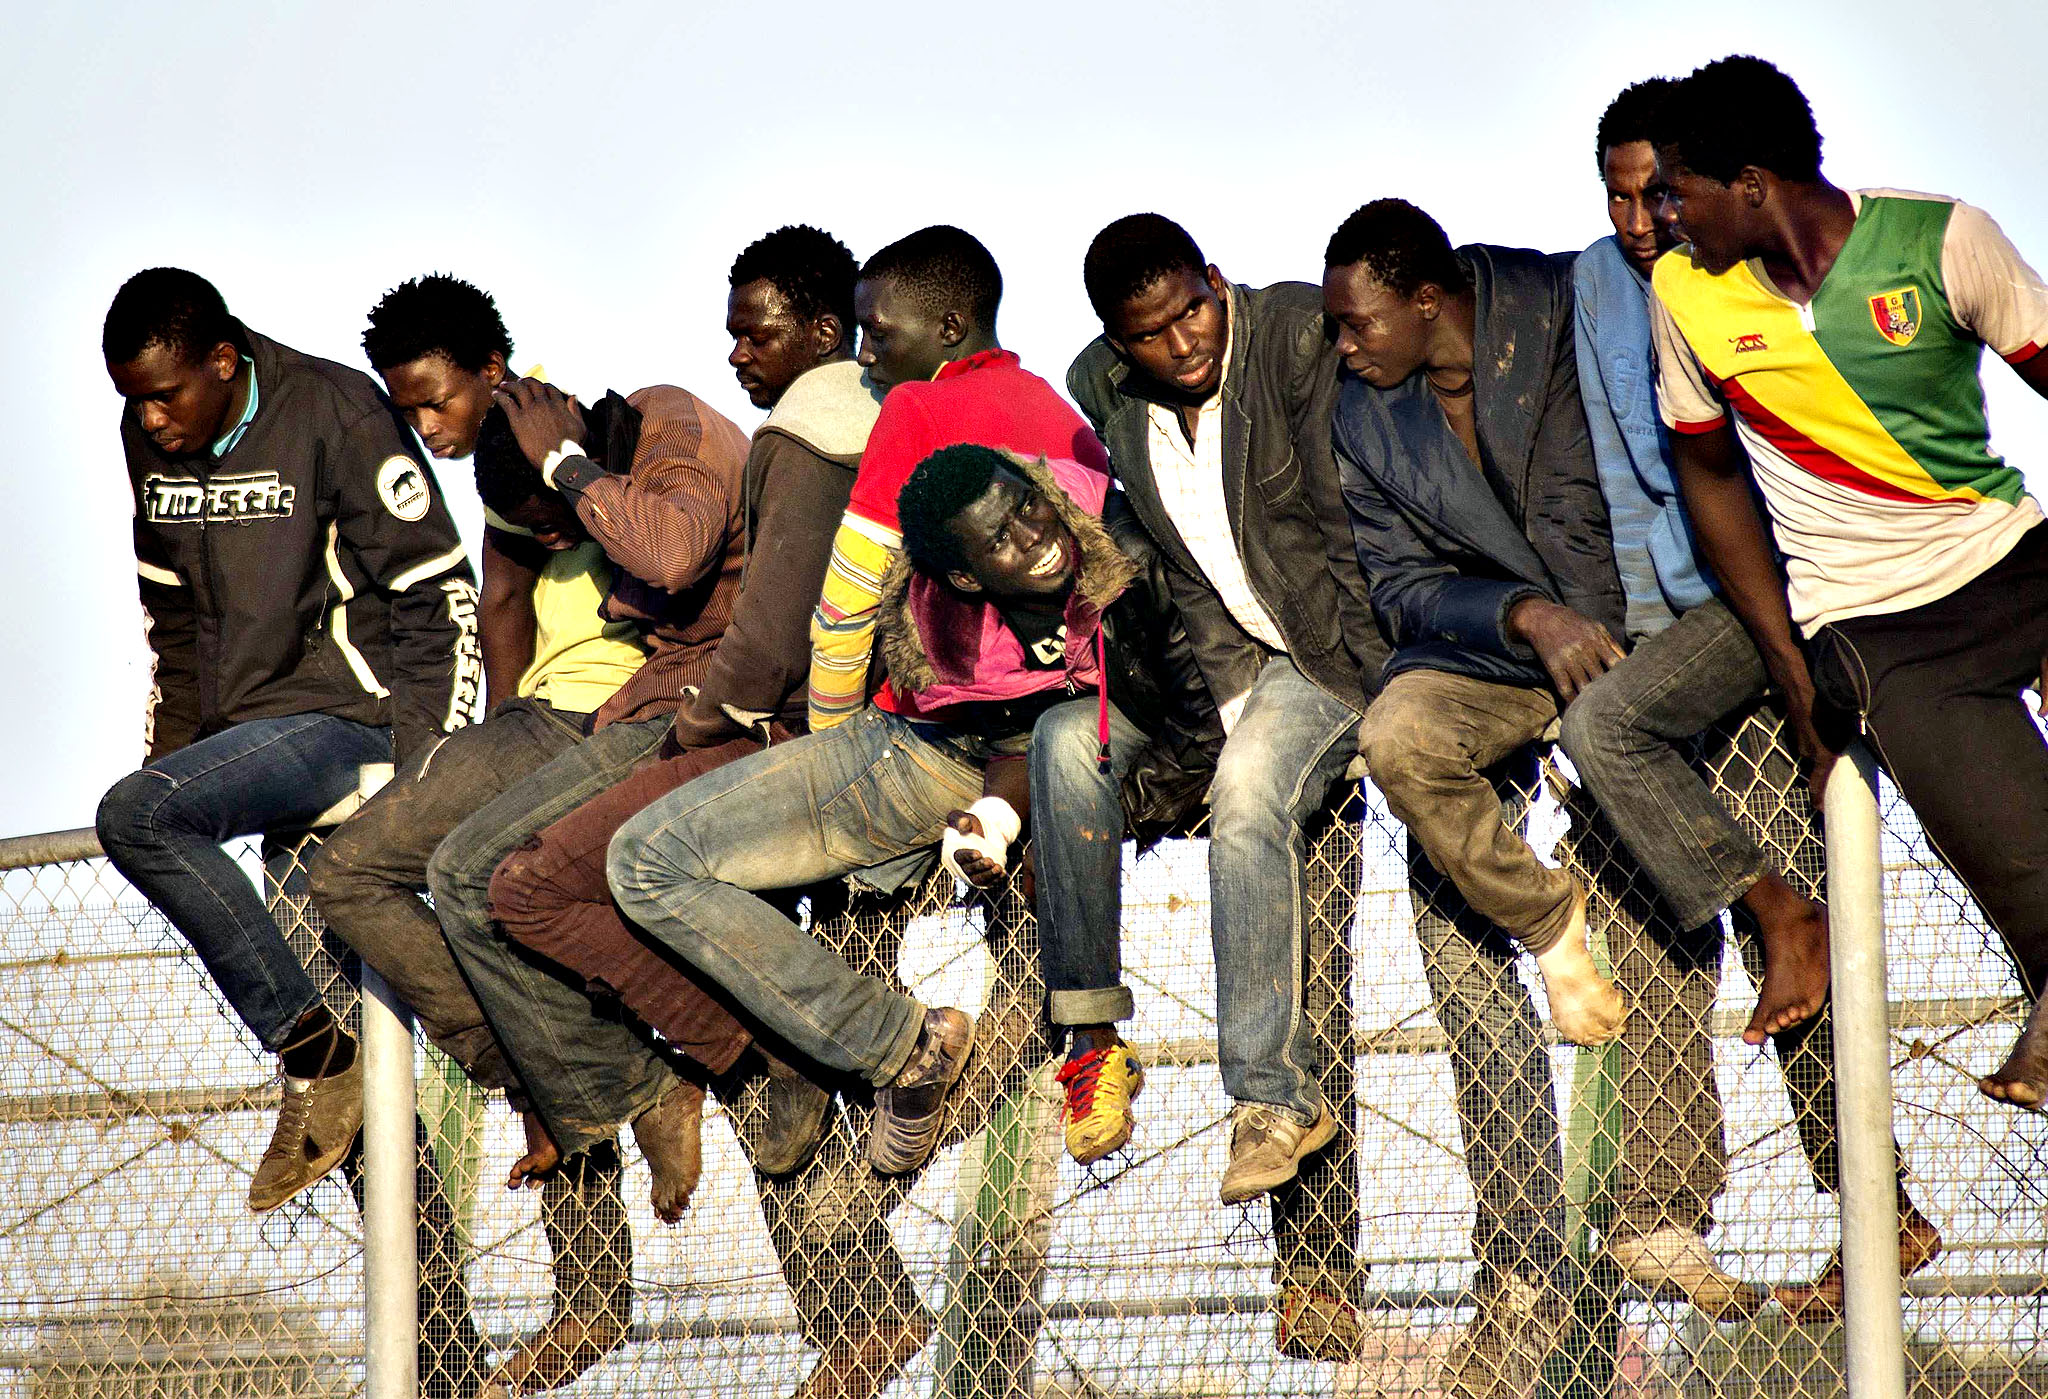 African migrants sit atop a border fence during an attempt to cross into Spanish territories, between Morocco and Spain's north African enclave of Melilla October 22, 2014. Around 400 migrants attempted to cross the border into Spain, according to local media.